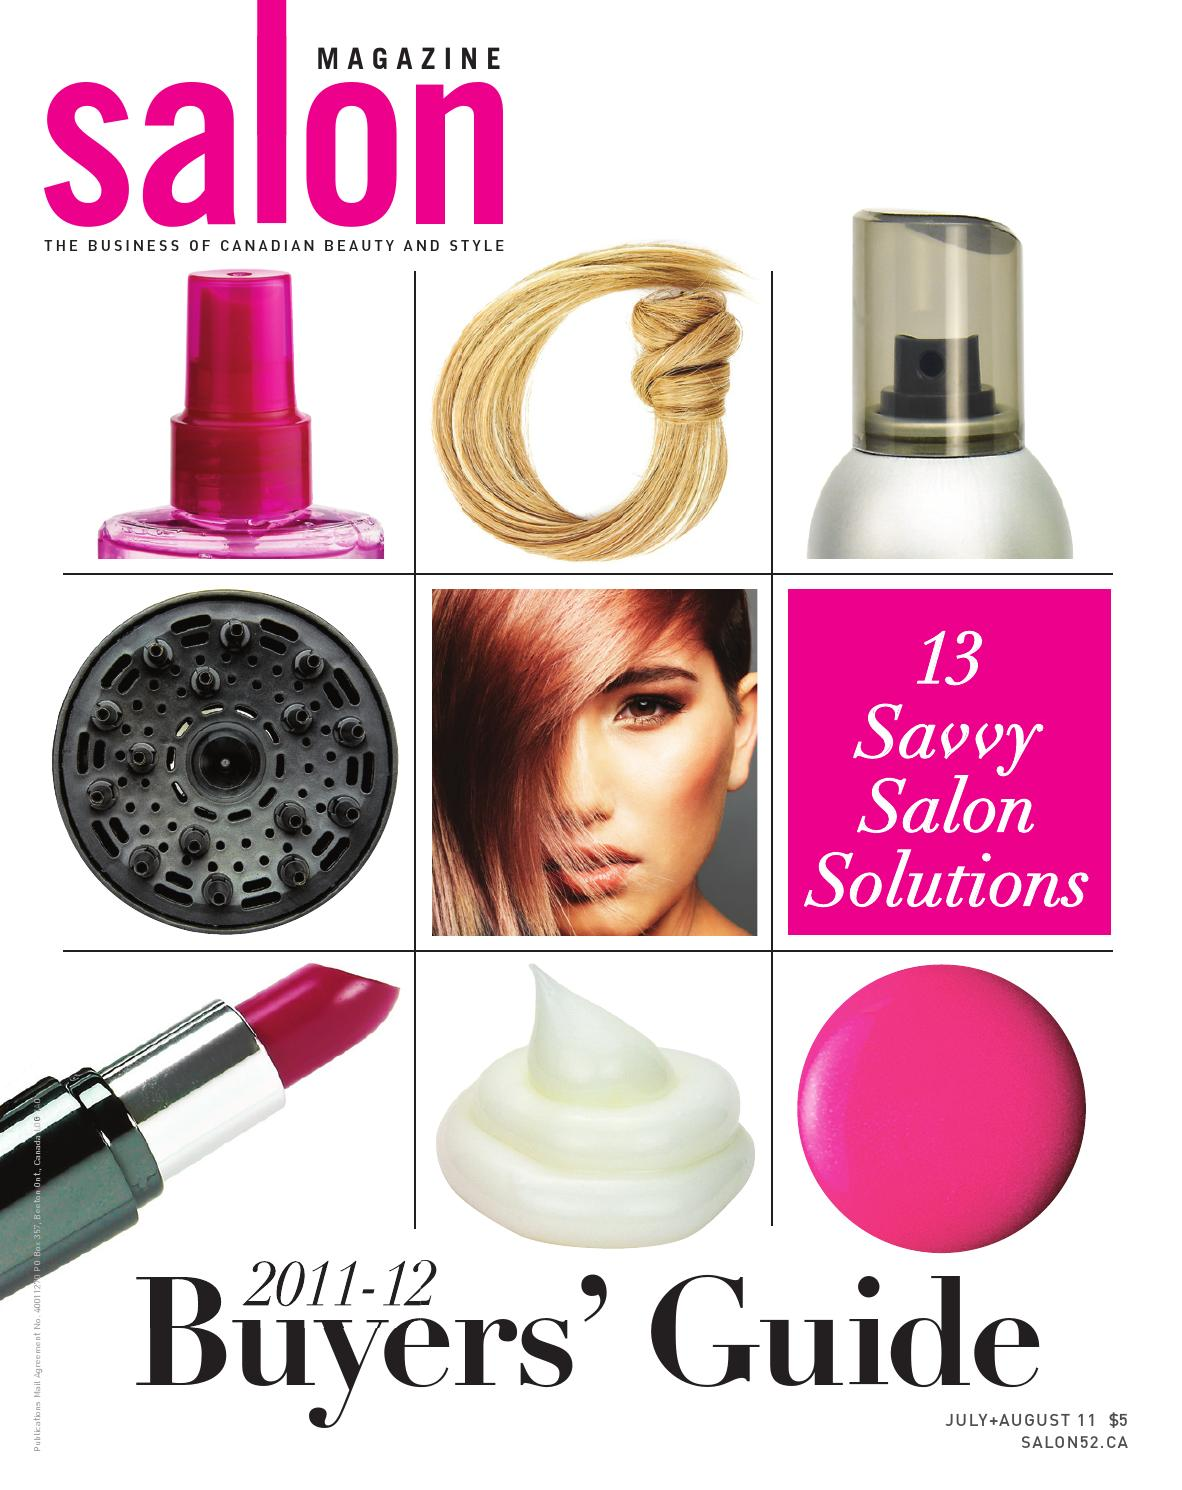 Salon Magazine July August 2011 By Communications Inc Issuu Armando Caruso 715 Angled Contour Brush